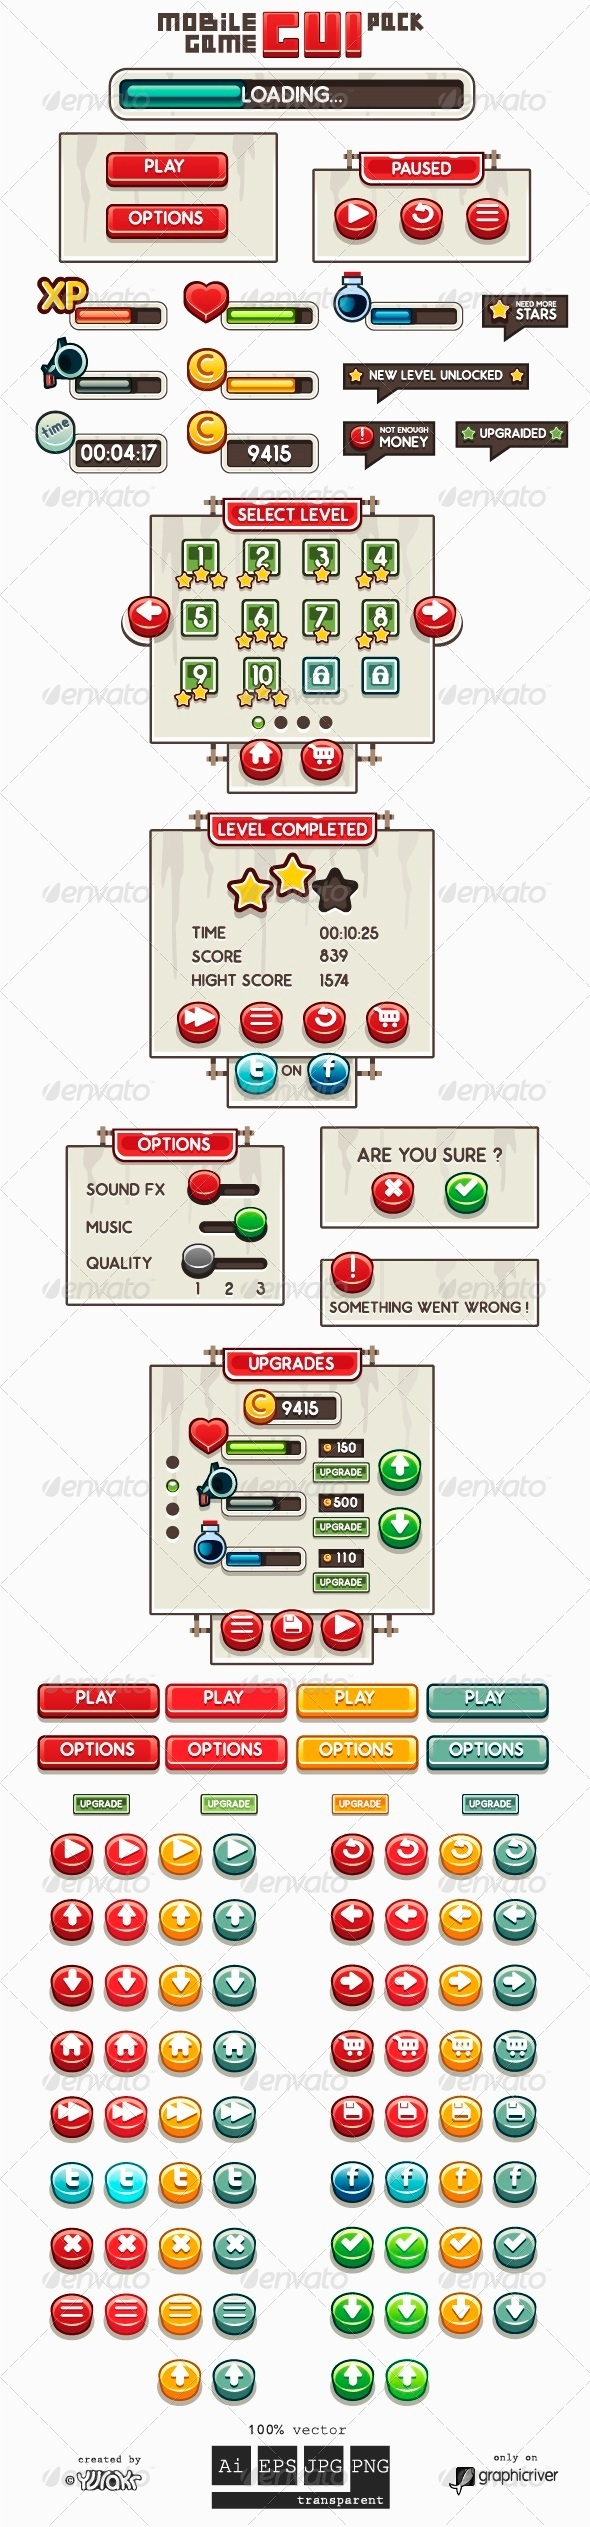 GraphicRiver Mobile Game GUI Pack 6886095